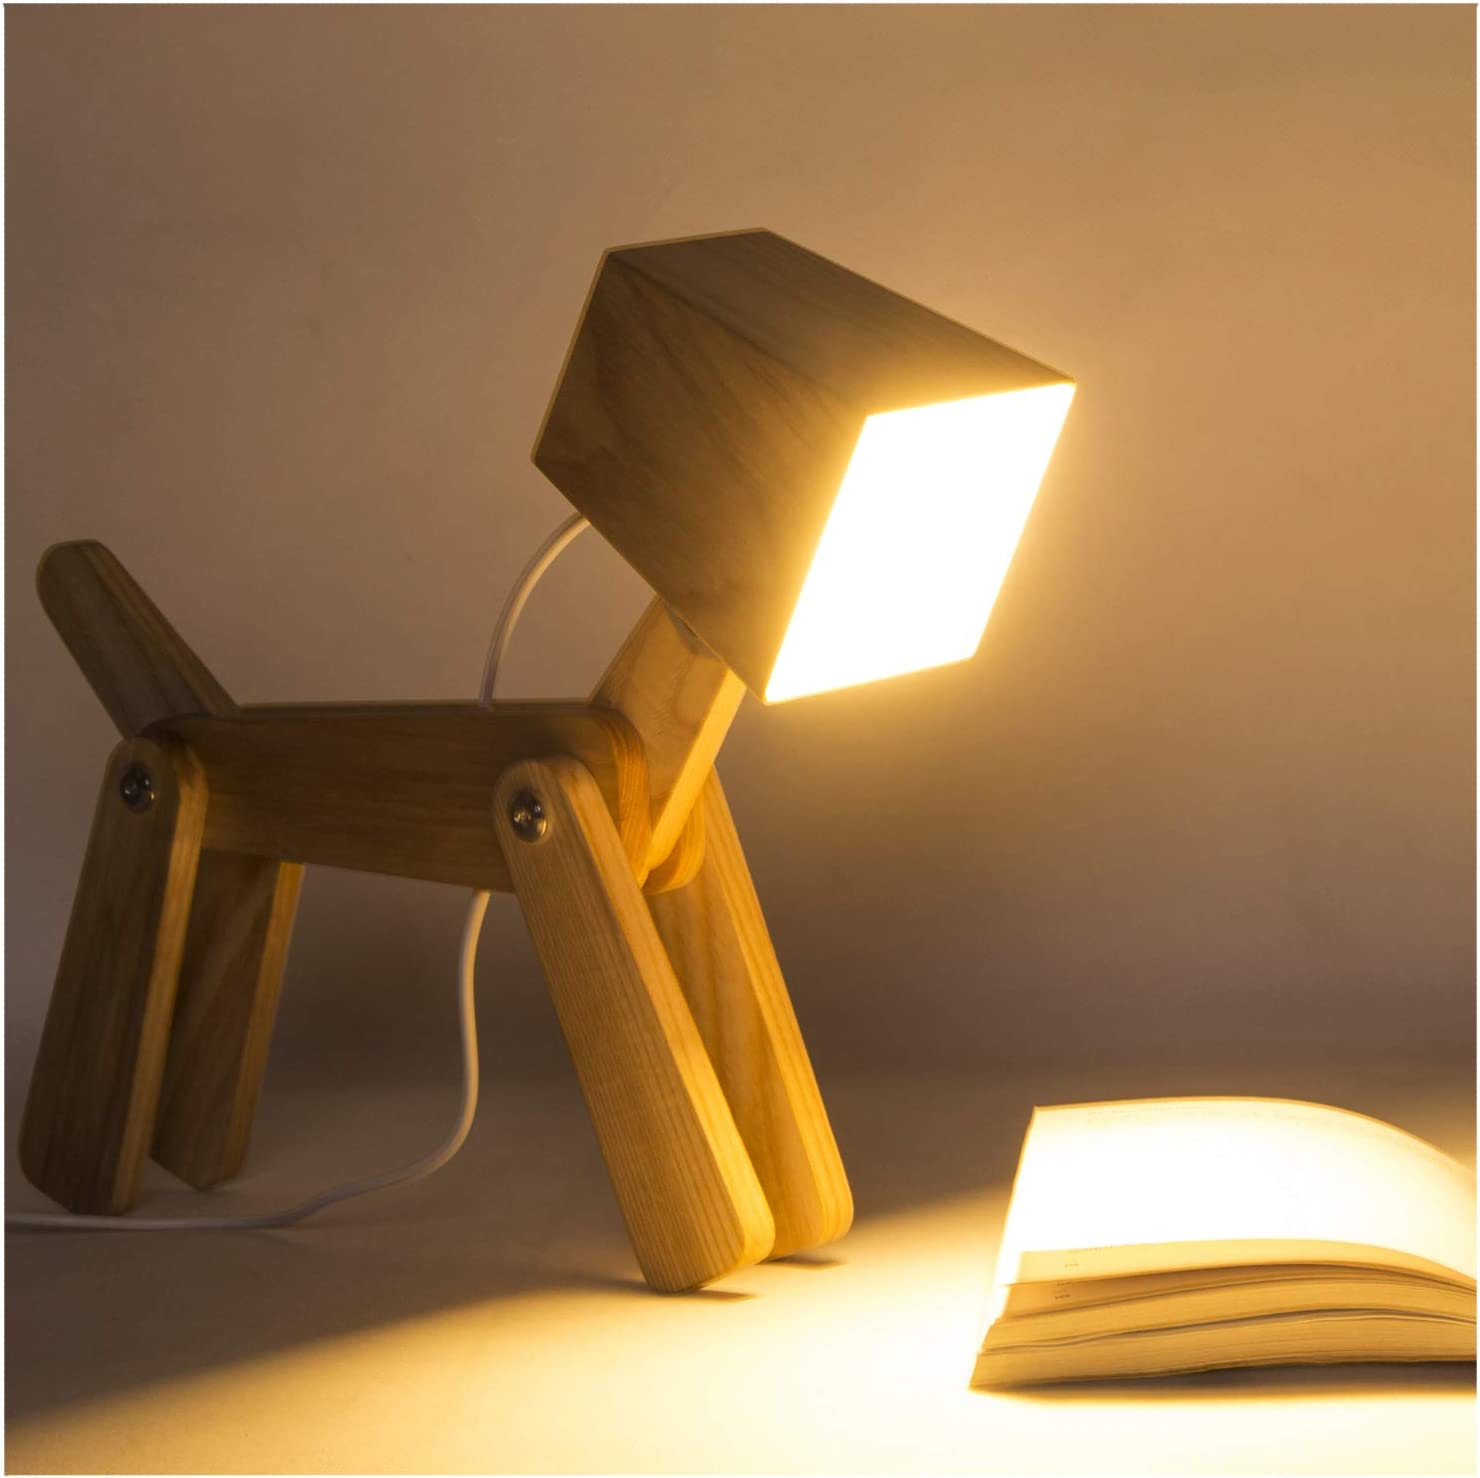 Hroome Fun Cute Wood Table Lamp Dog Design Adjustable Dimmable Bedside Touch Control 6w For Bedroom M Warm White 2800 3200k Amazon Co Uk Kitchen Home